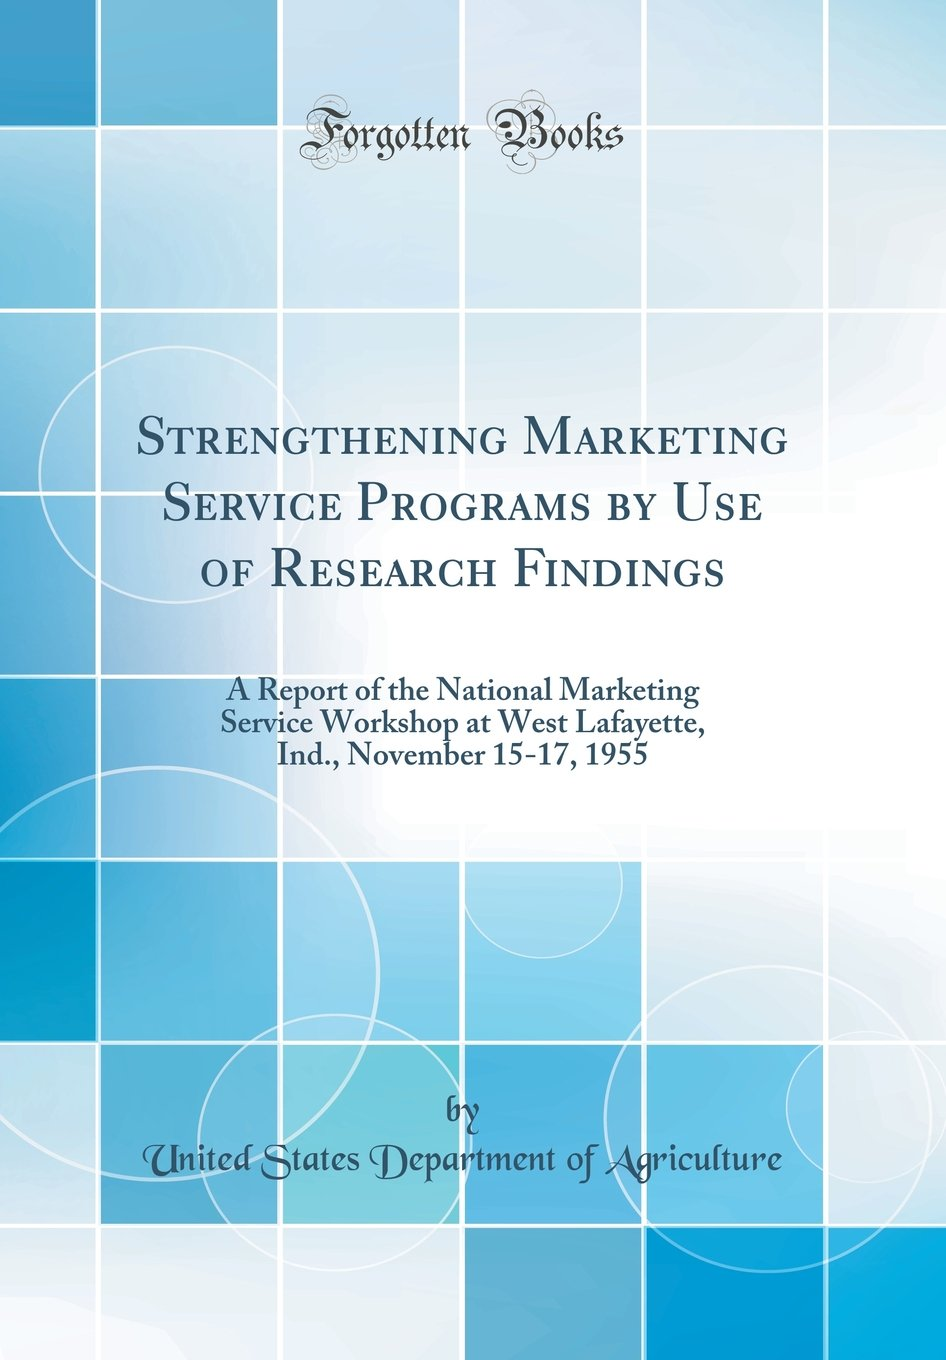 Read Online Strengthening Marketing Service Programs by Use of Research Findings: A Report of the National Marketing Service Workshop at West Lafayette, Ind., November 15-17, 1955 (Classic Reprint) PDF